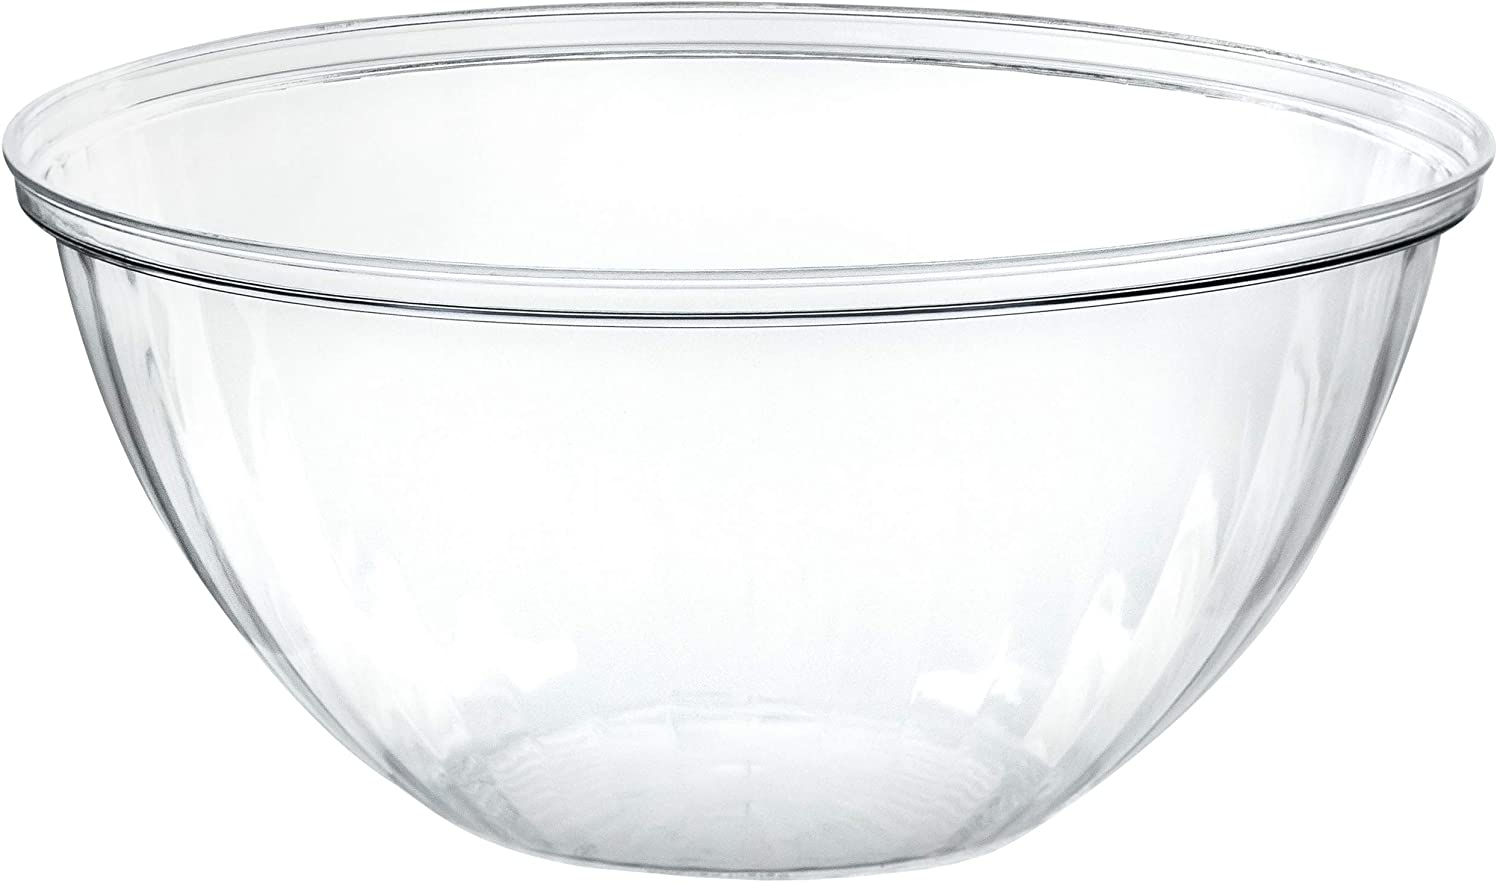 Plasticpro Disposable Round Crystal Clear Serving Bowls, Party Snack or Salad Bowl, Plastic Clear Chip Bowls, Party Snack Bowls, Candy Dish, Salad (2, 96 OUNCE)